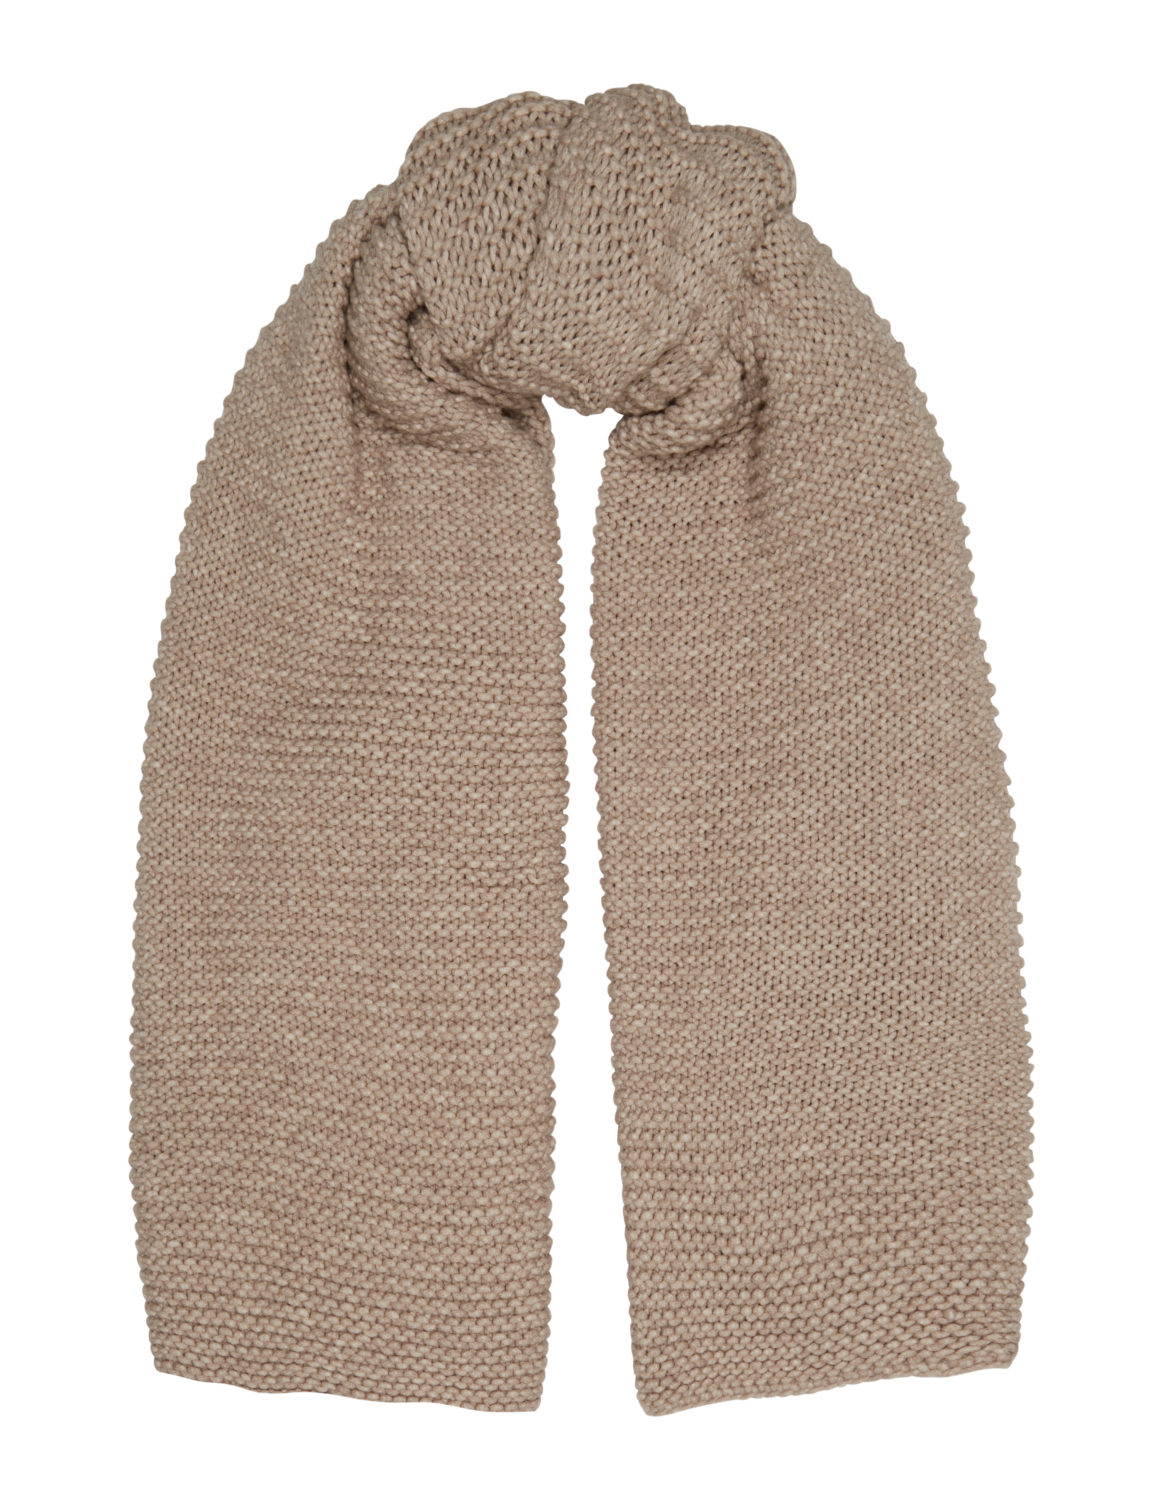 Latest Collections Fabiana Filippi knit scarf Free Shipping Find Great Free Shipping Buy Really k3PDshcr